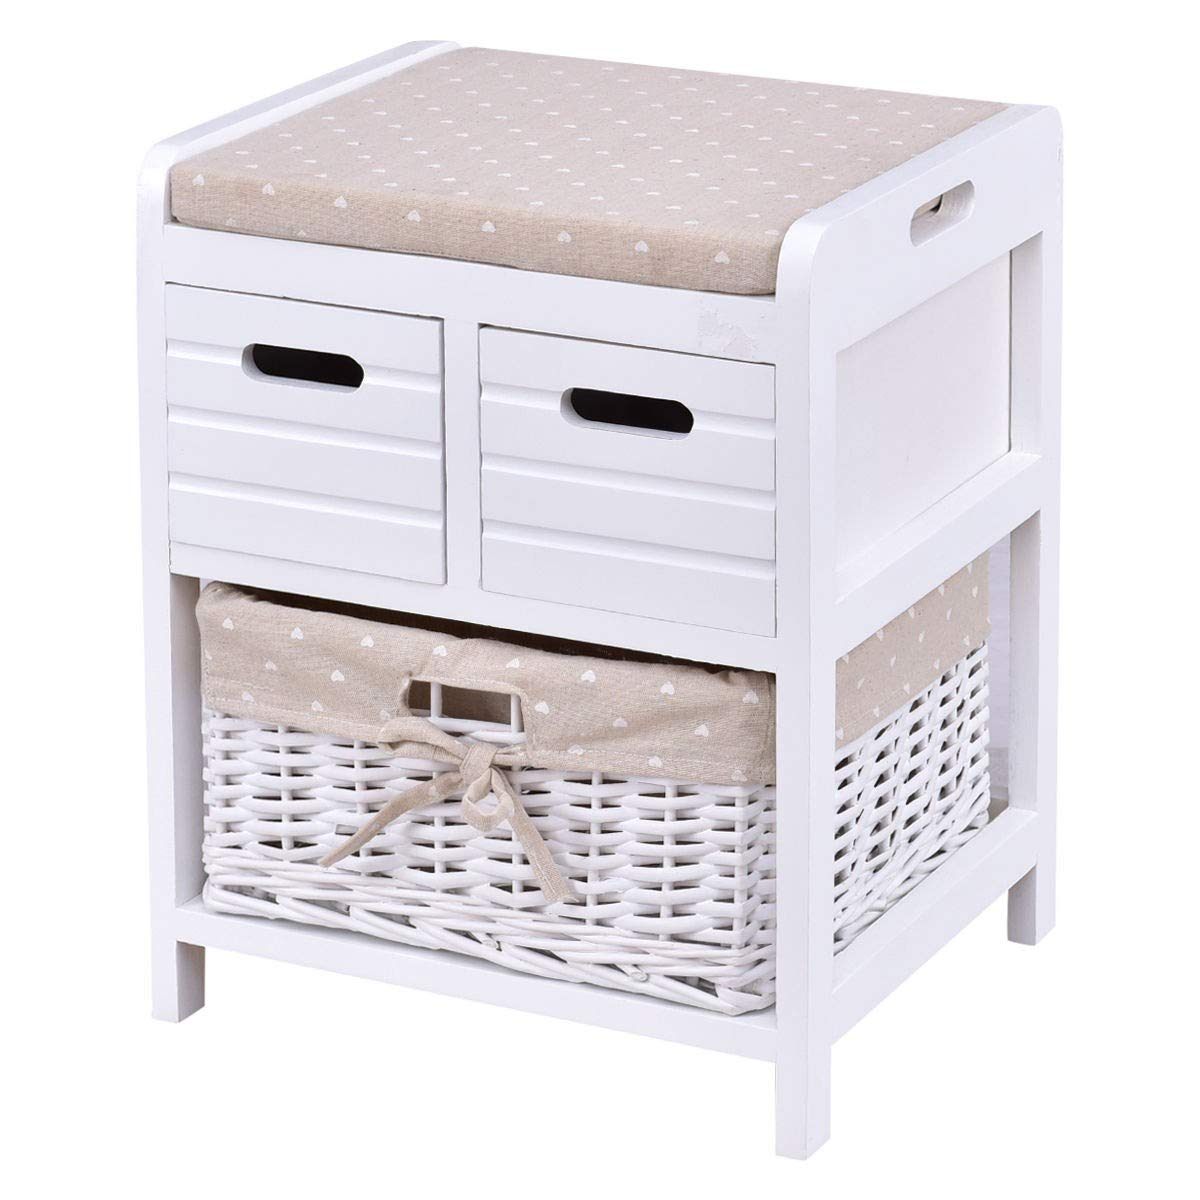 Wooden Bedside Table with Wicker Rattan Drawer